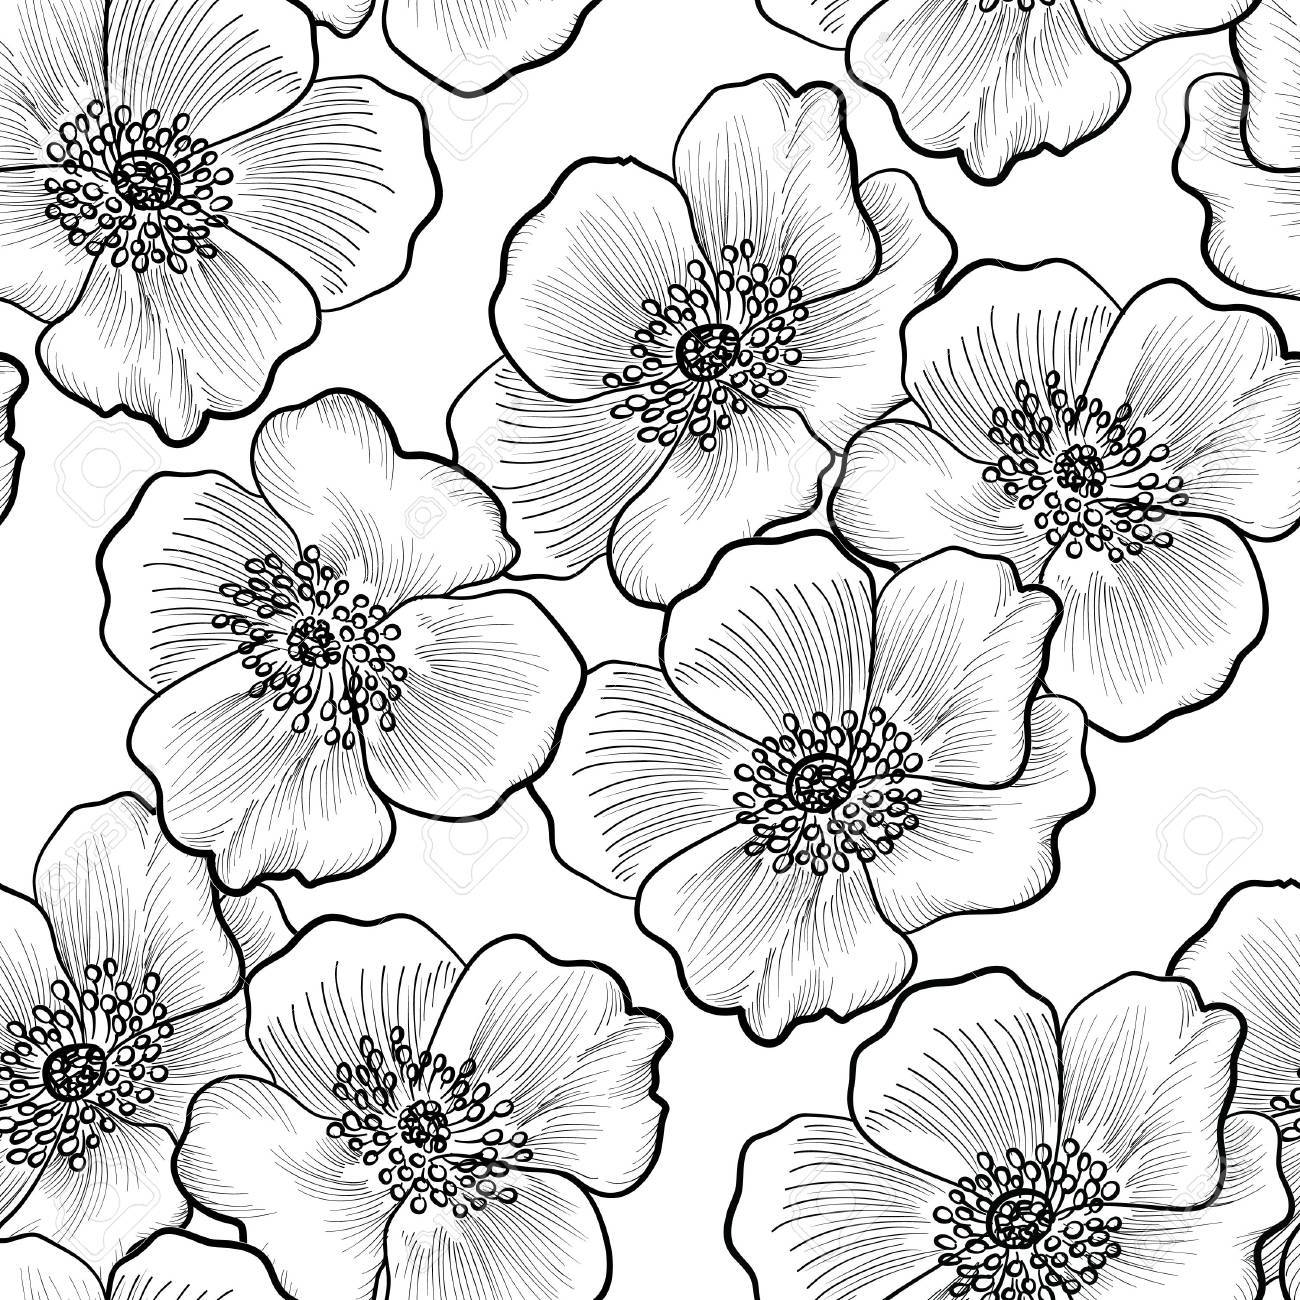 Floral Seamless Pattern Flower Background Flourish Sketch Black